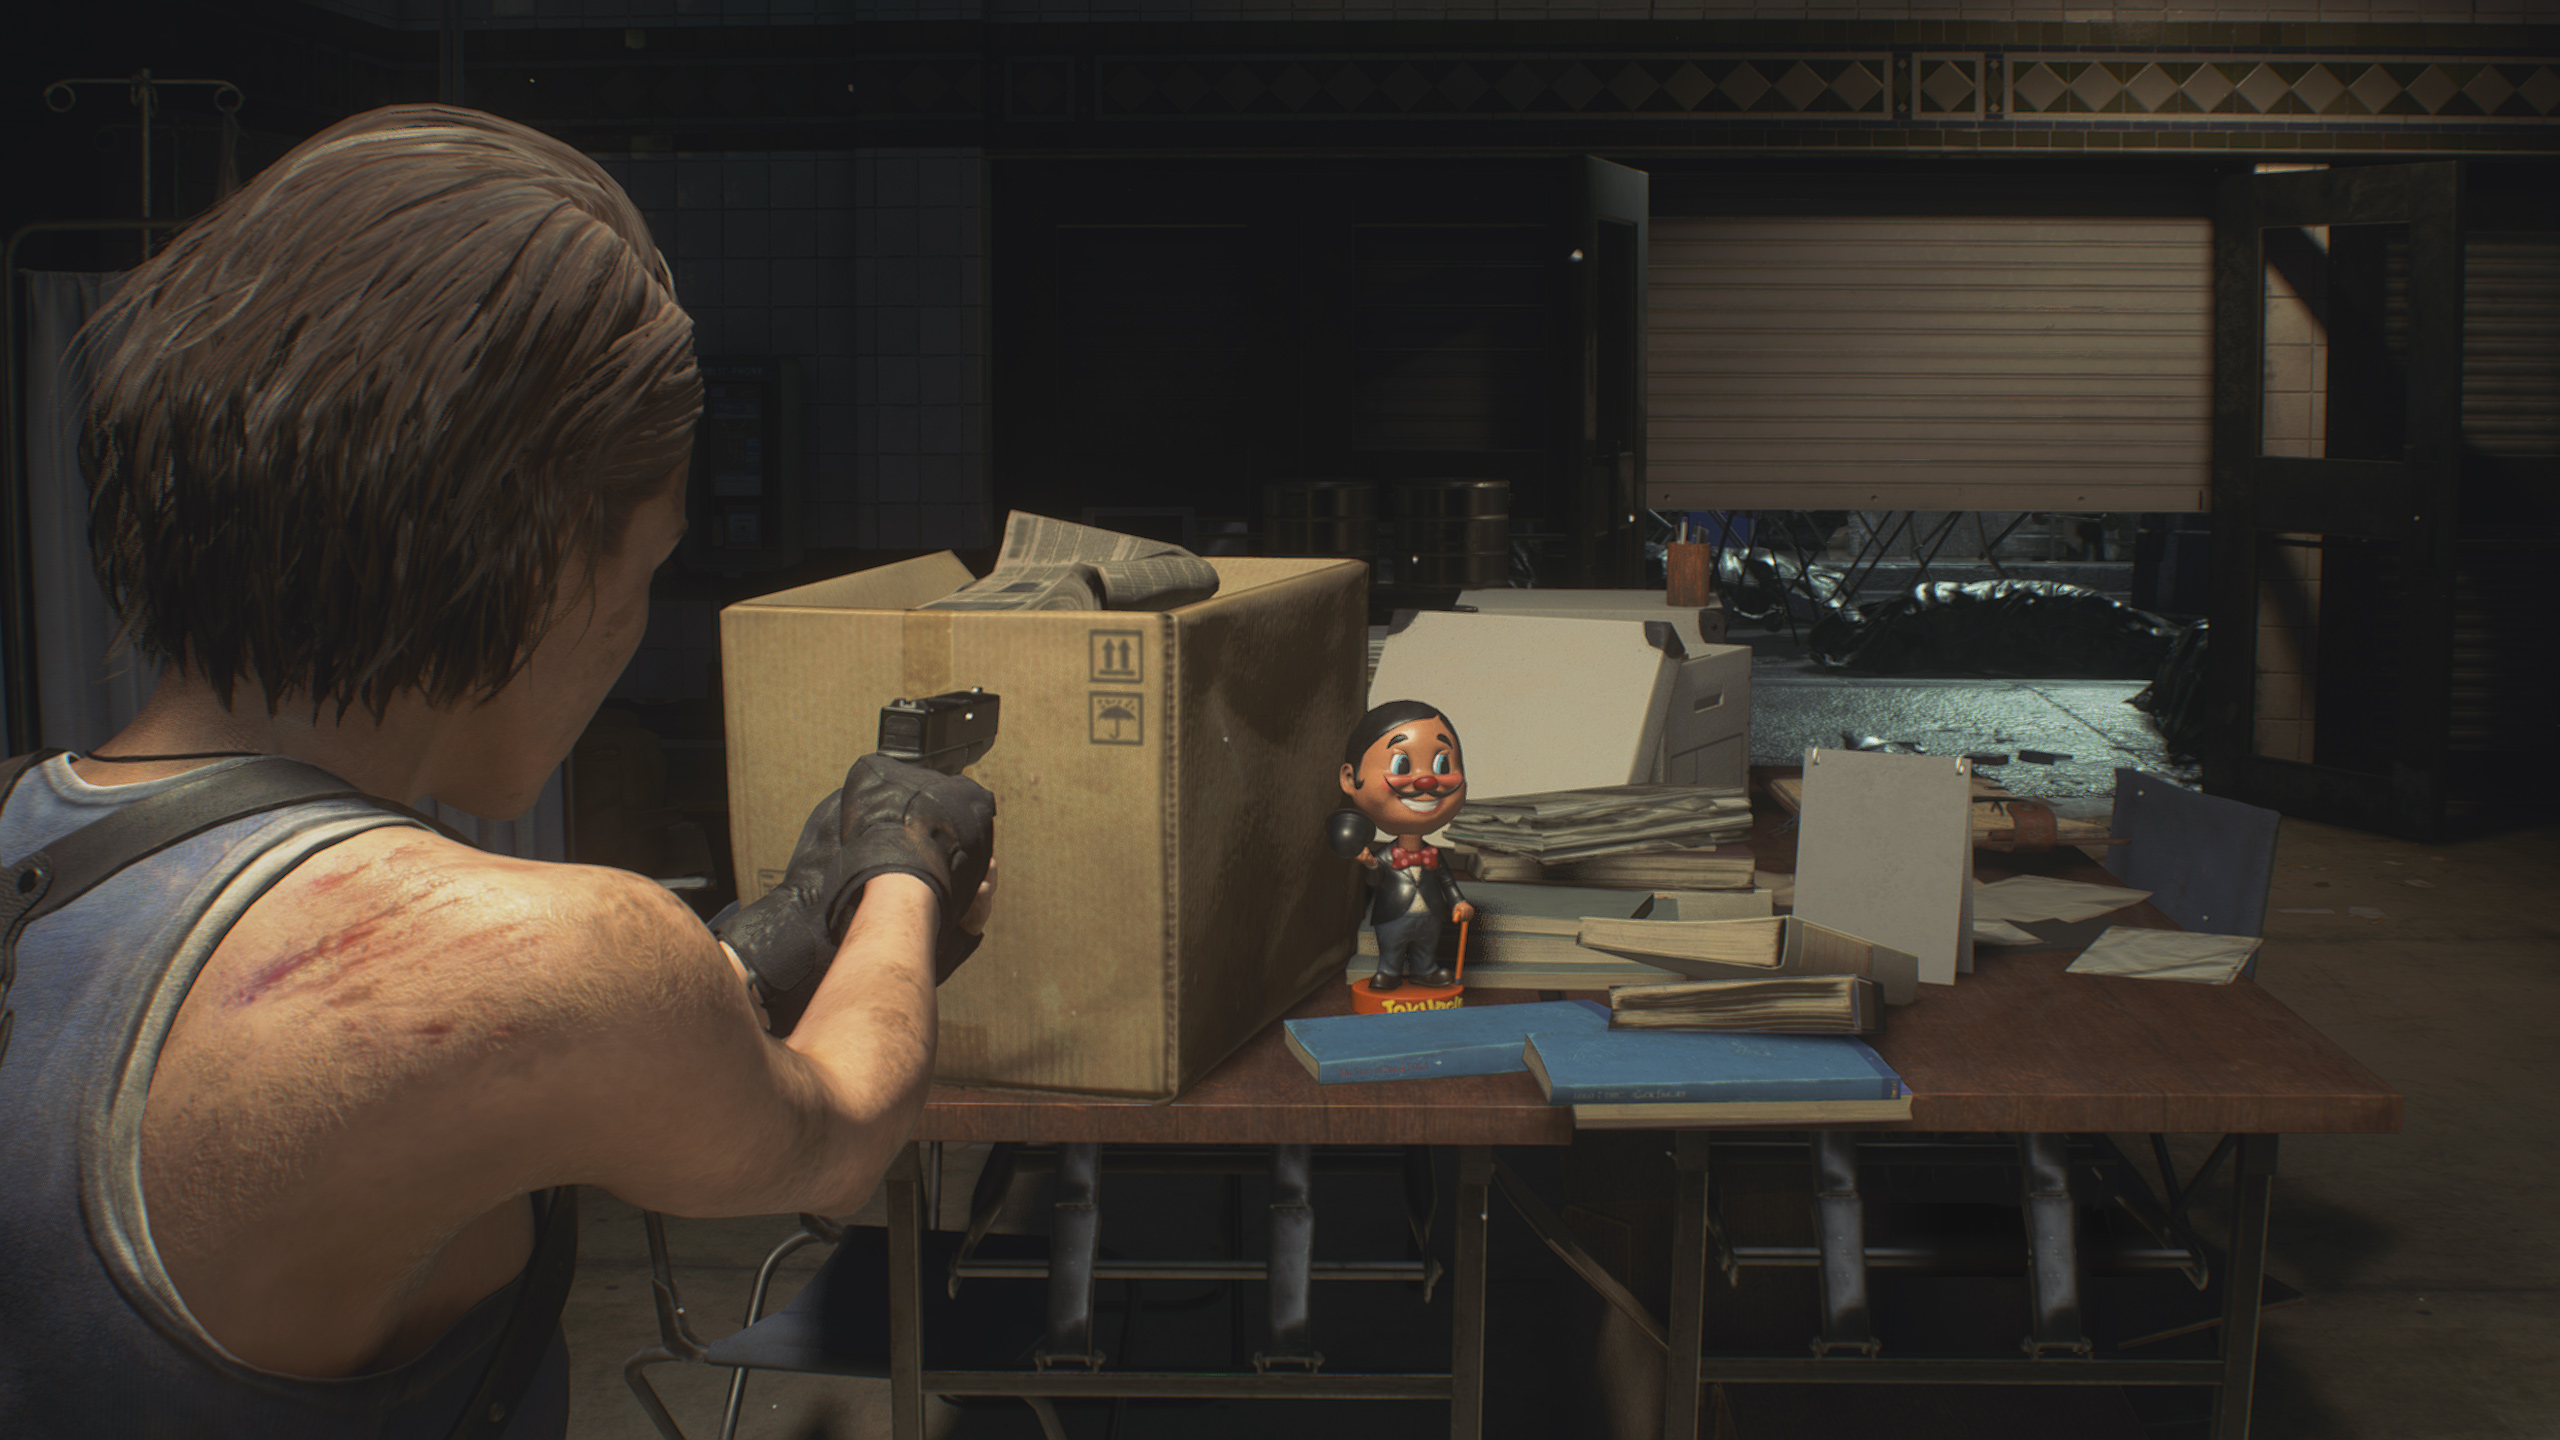 Resident Evil 3: Raccoon City Demo Mr. Charlie doll locations